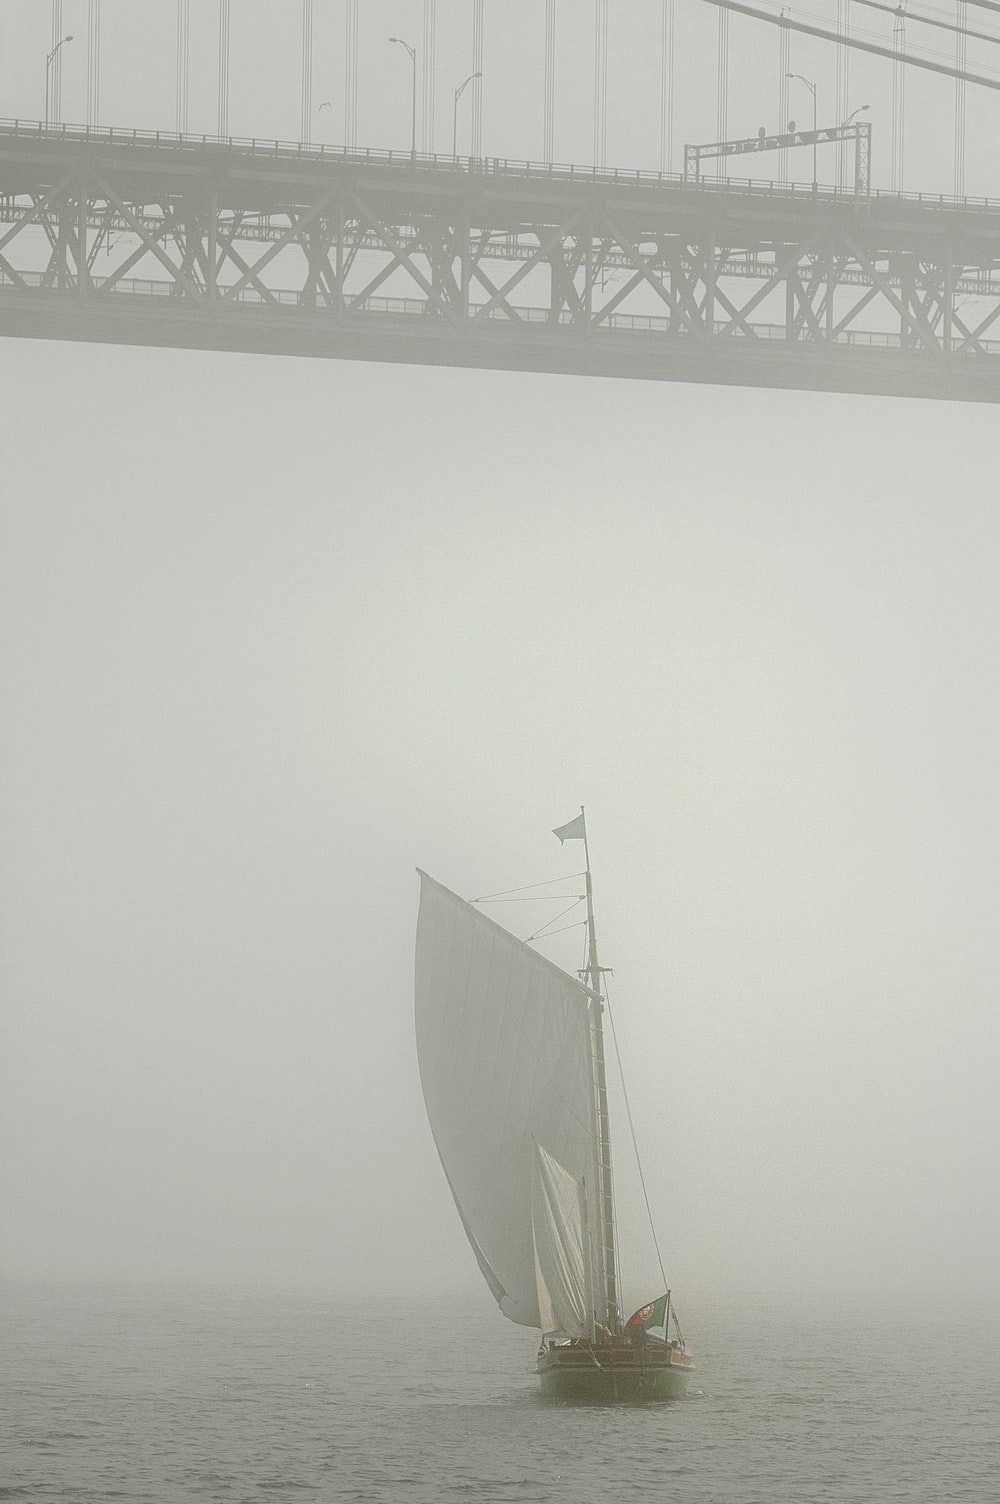 white sail boat on sea during foggy weather